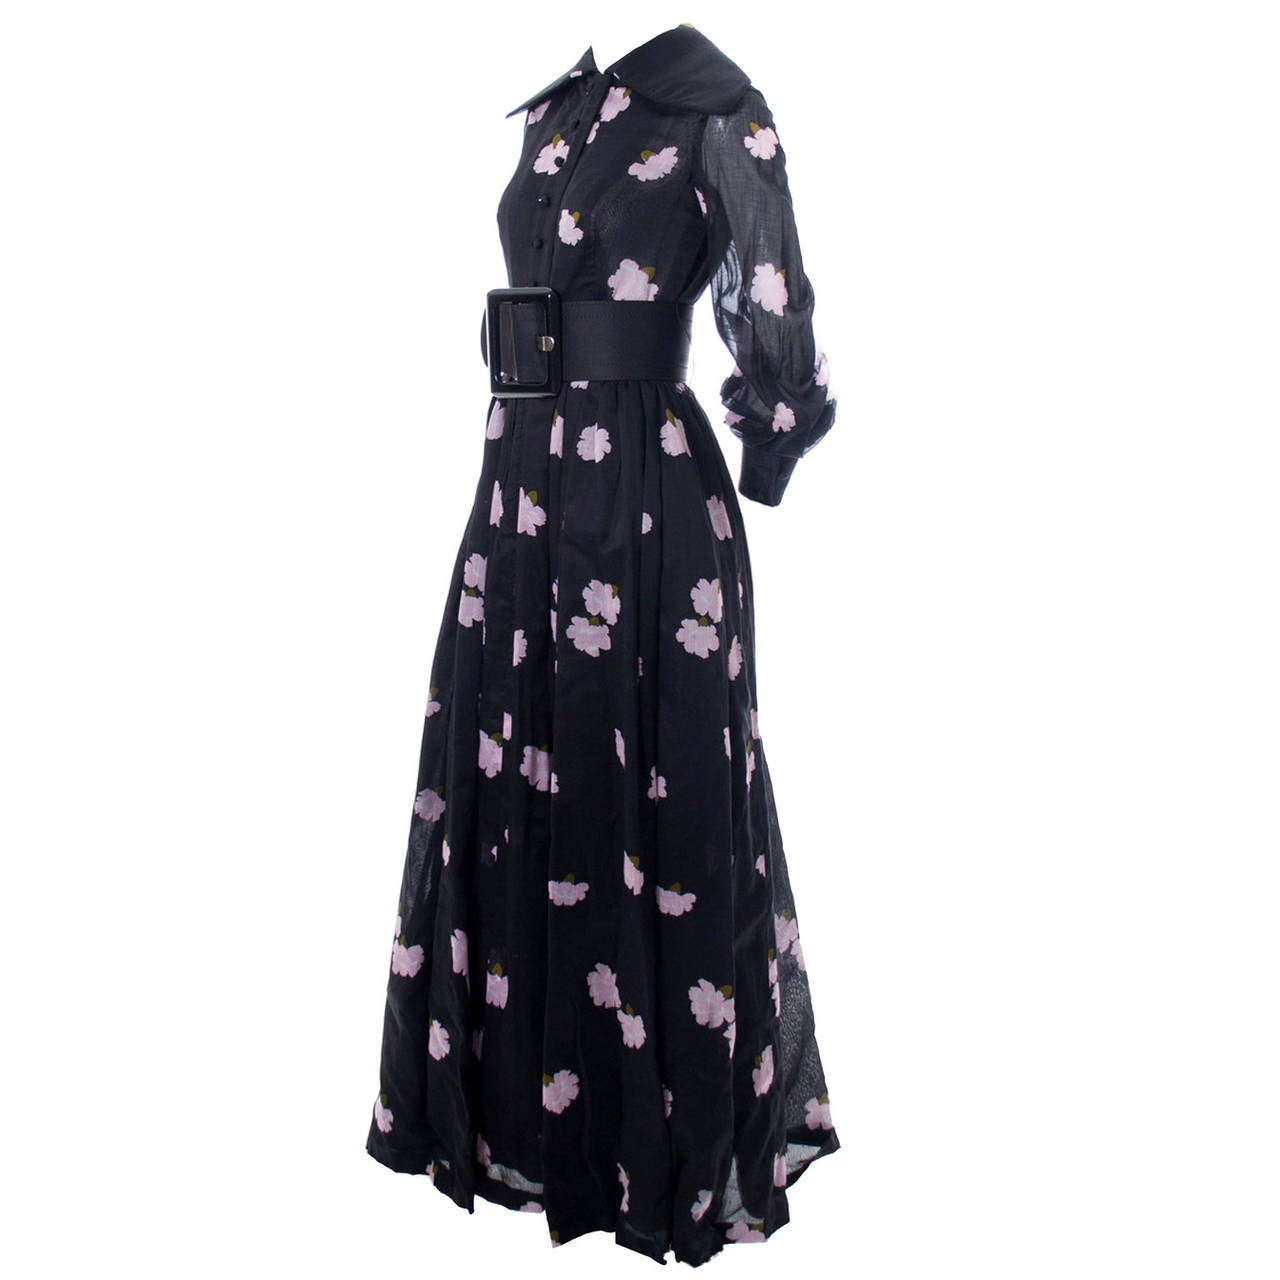 Geoffrey Beene Vintage Black and Pink Floral Print Long Dress, 1960s